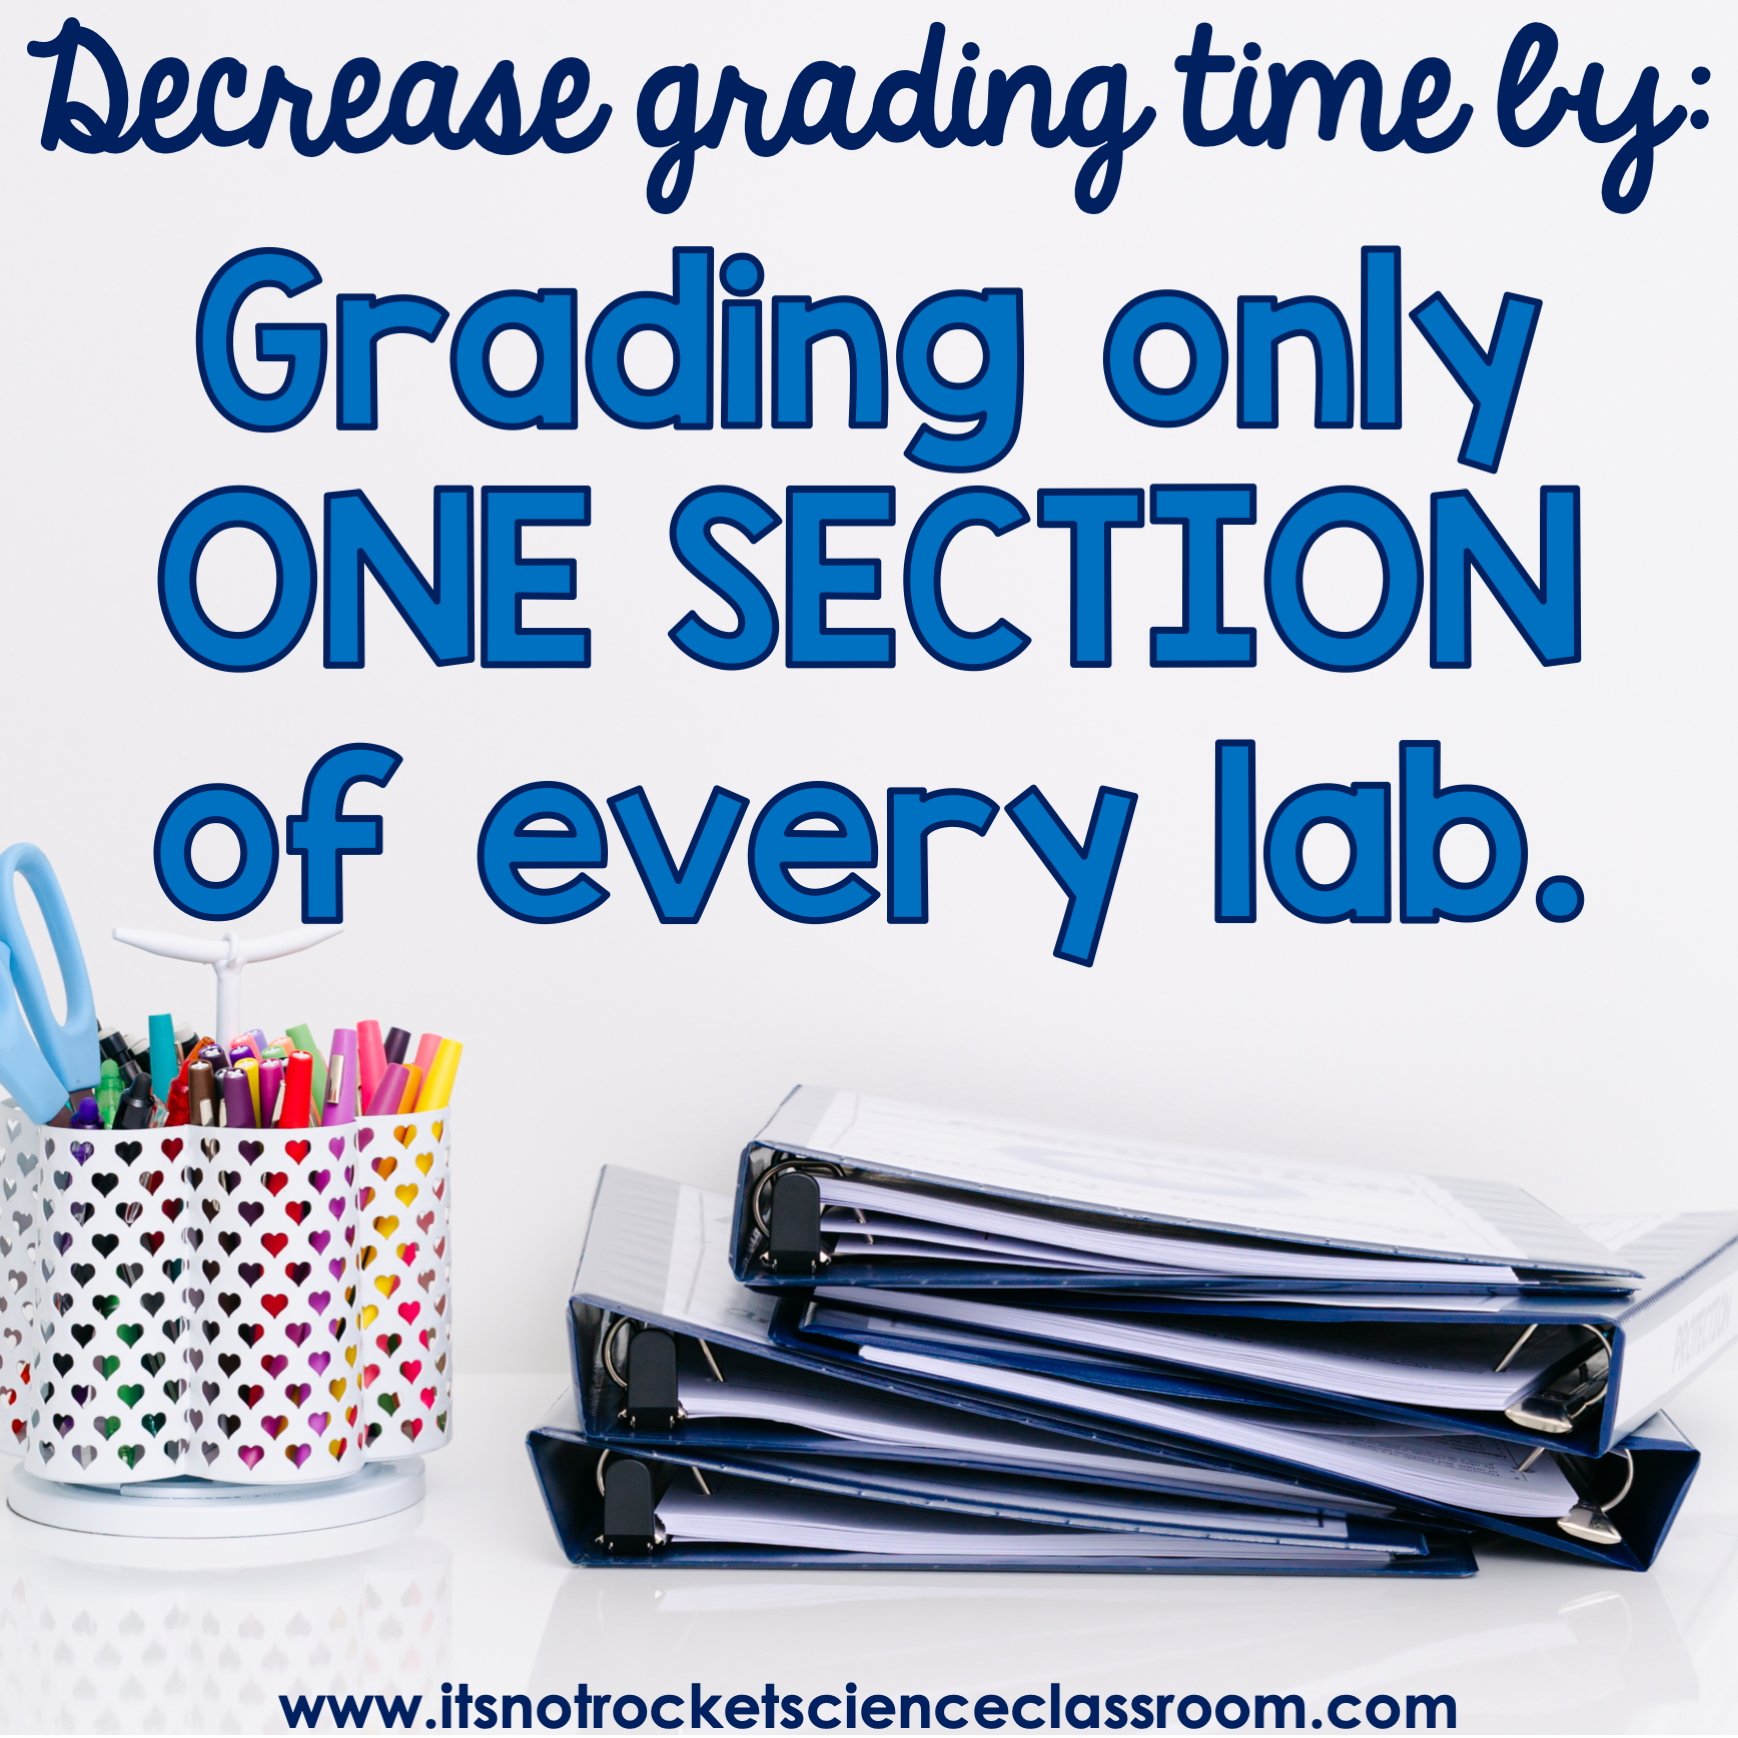 Tip #3 to decrease grading time: grading only ONE section of every lab.